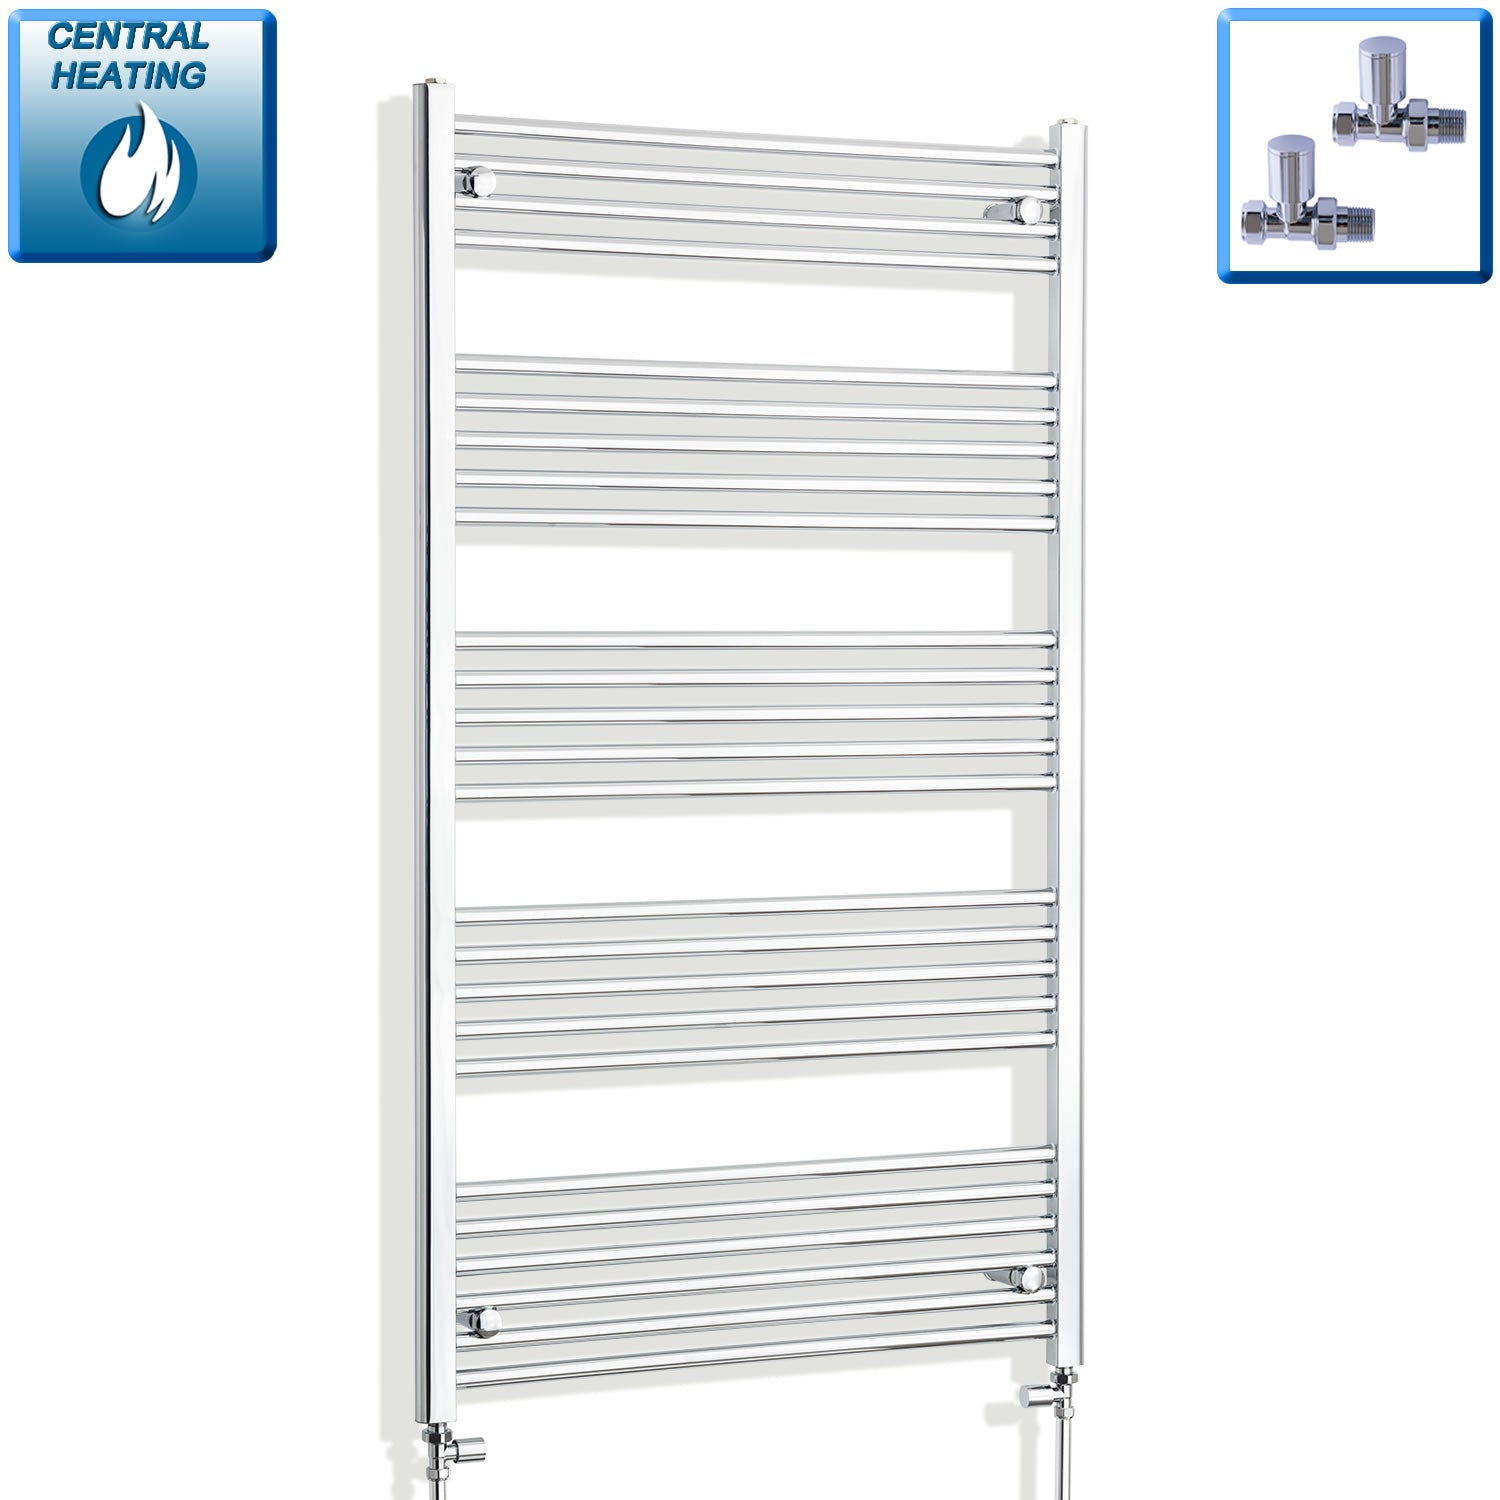 850mm Wide 1400mm High Flat Chrome Heated Towel Rail Radiator HTR,With Straight Valve